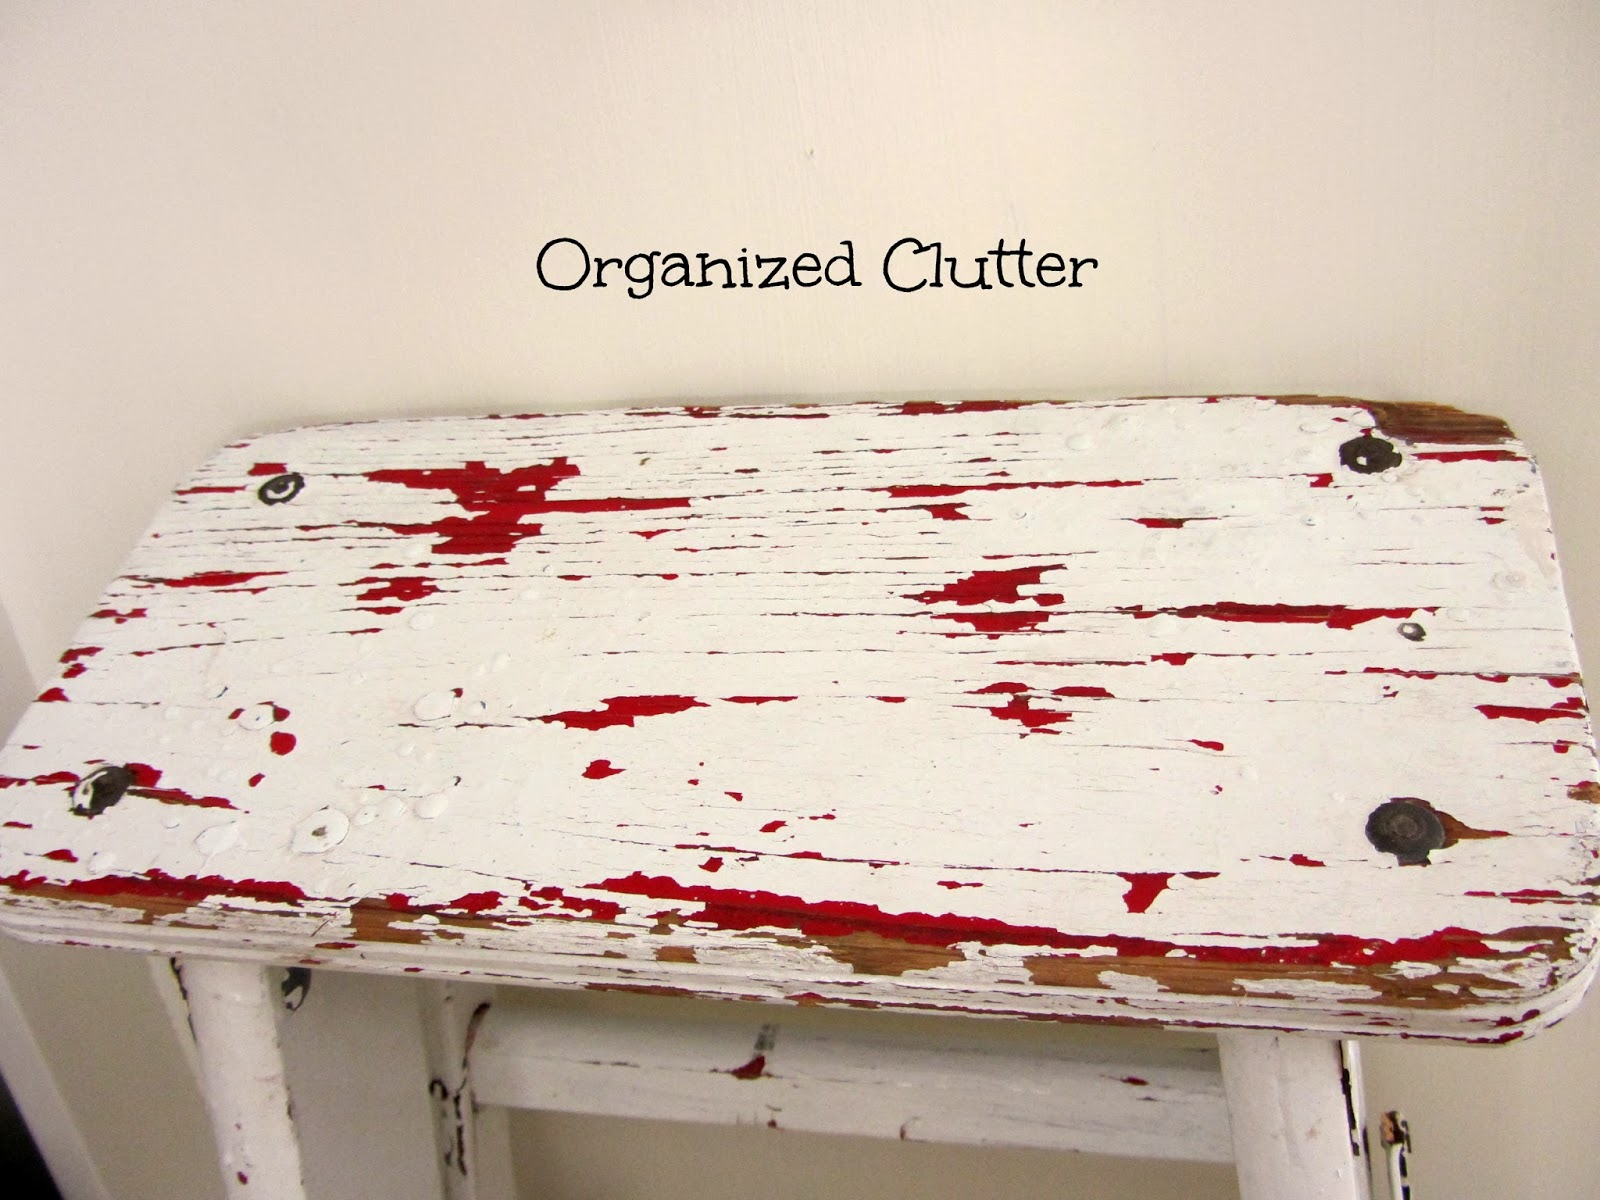 A Chippy, Shabby, Little Step Stool www.organizedclutterqueen.blogspot.com